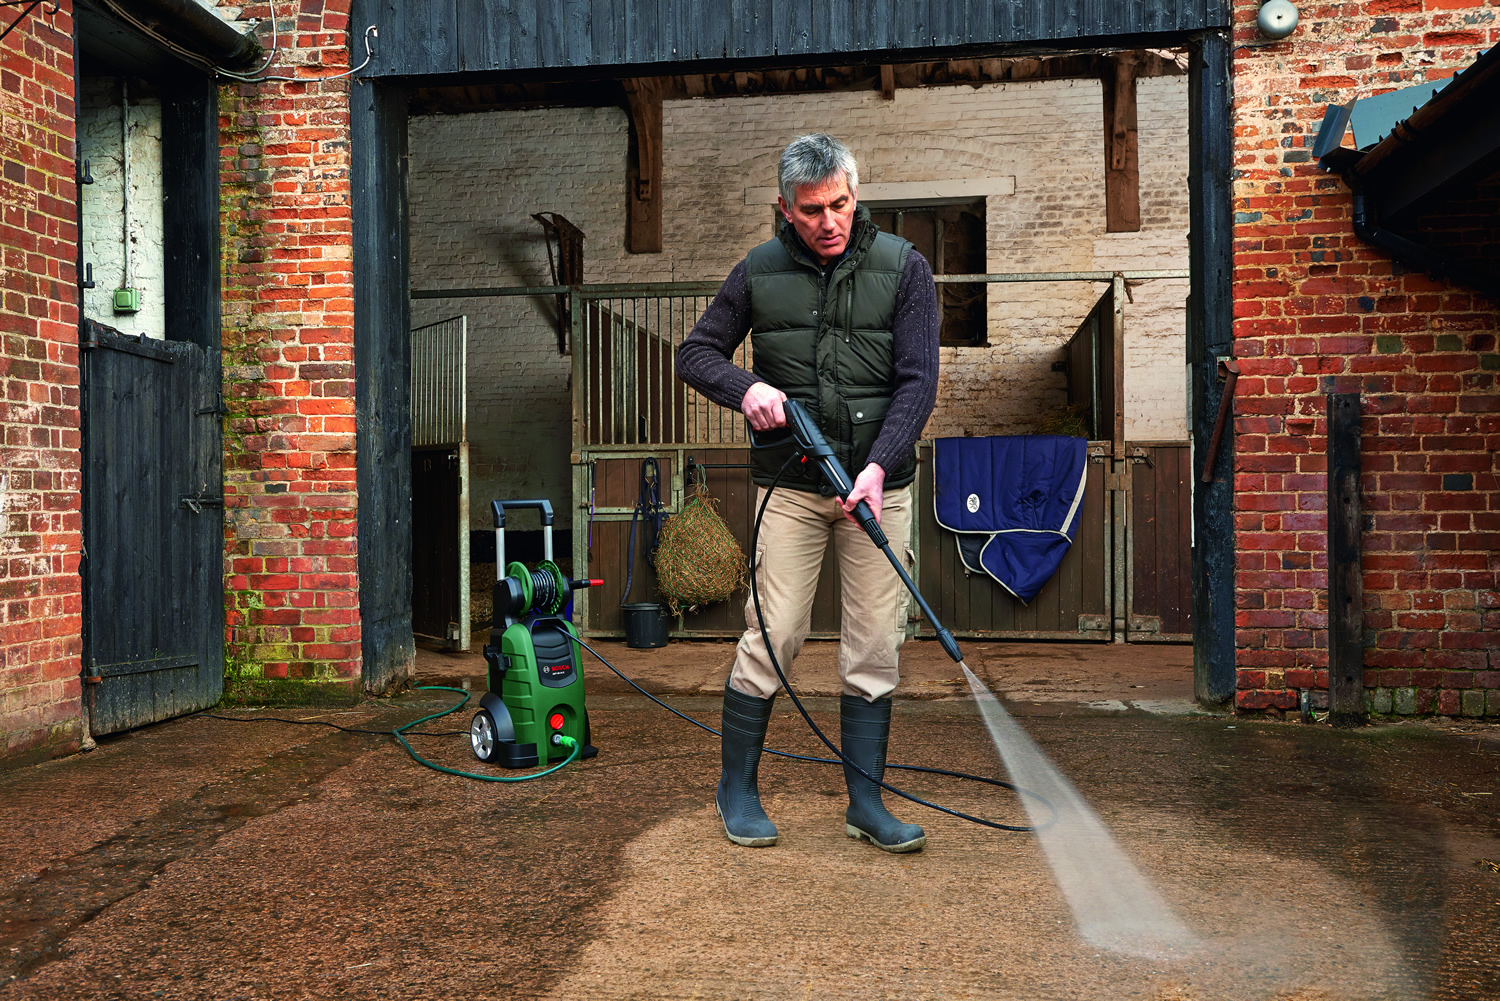 Bosch pressure washer aqt 45 14 x garden4less for Gardening 4 less reviews